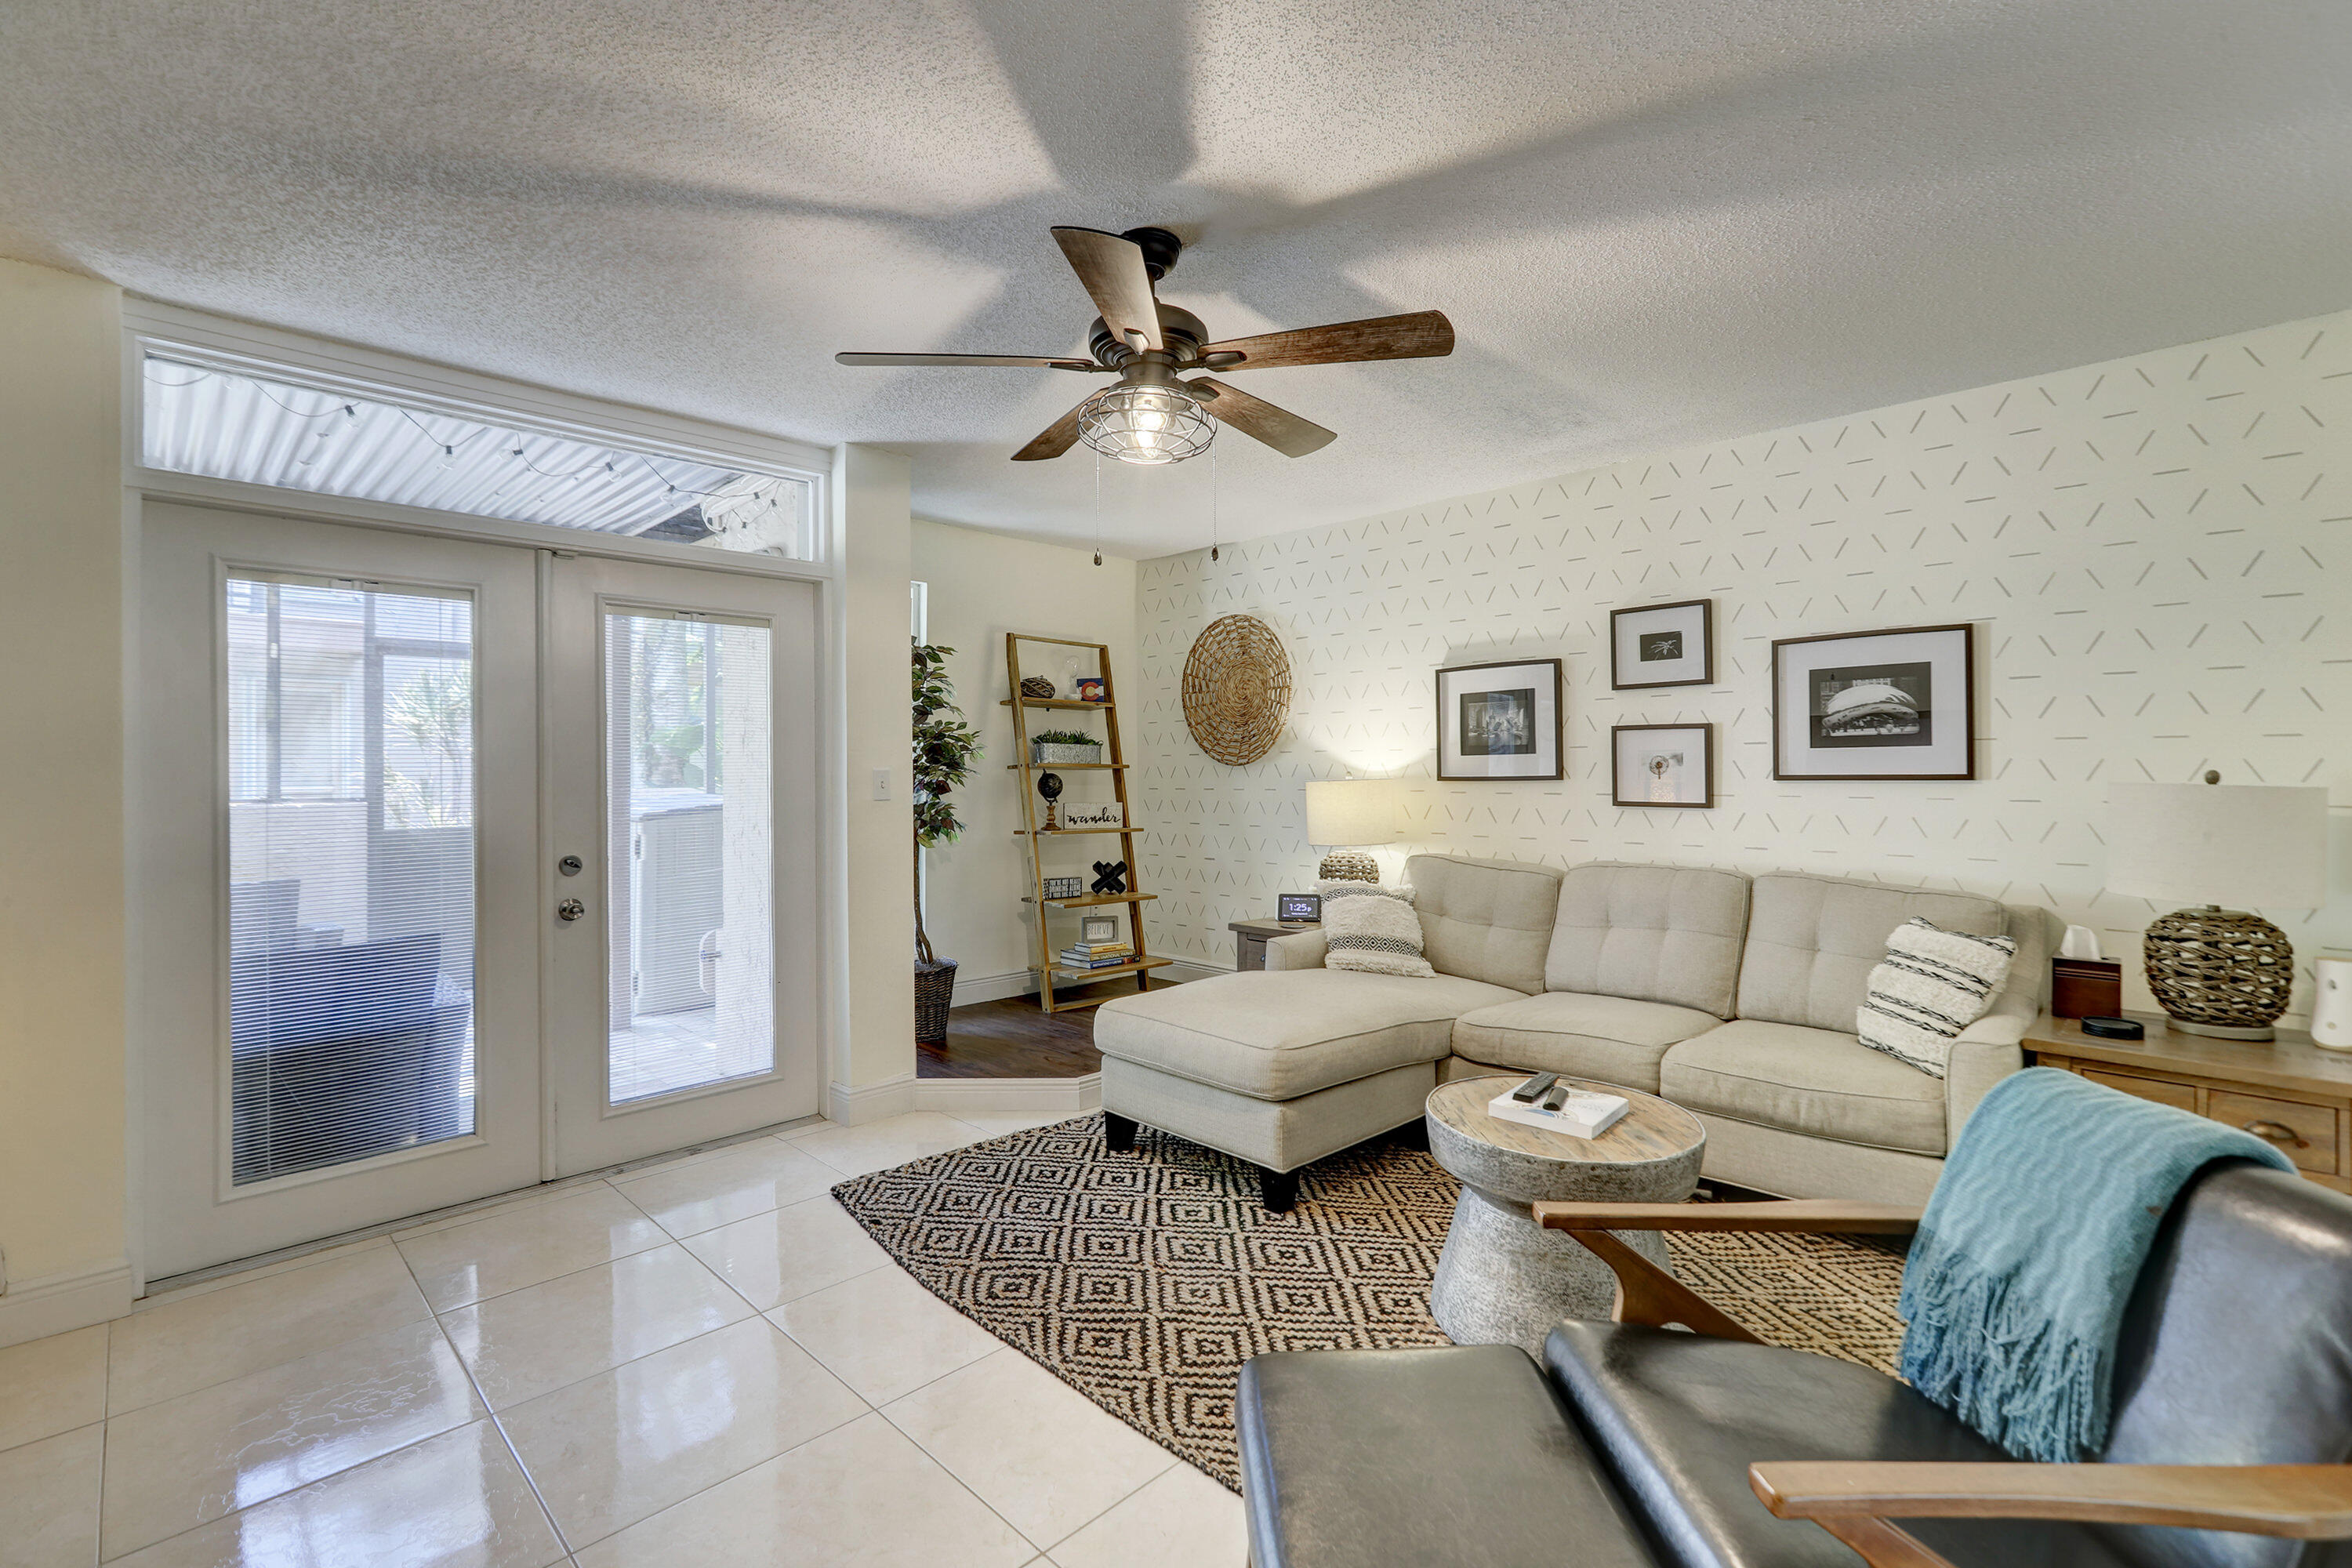 Home for sale in Cypress Cove Wilton Manors Florida